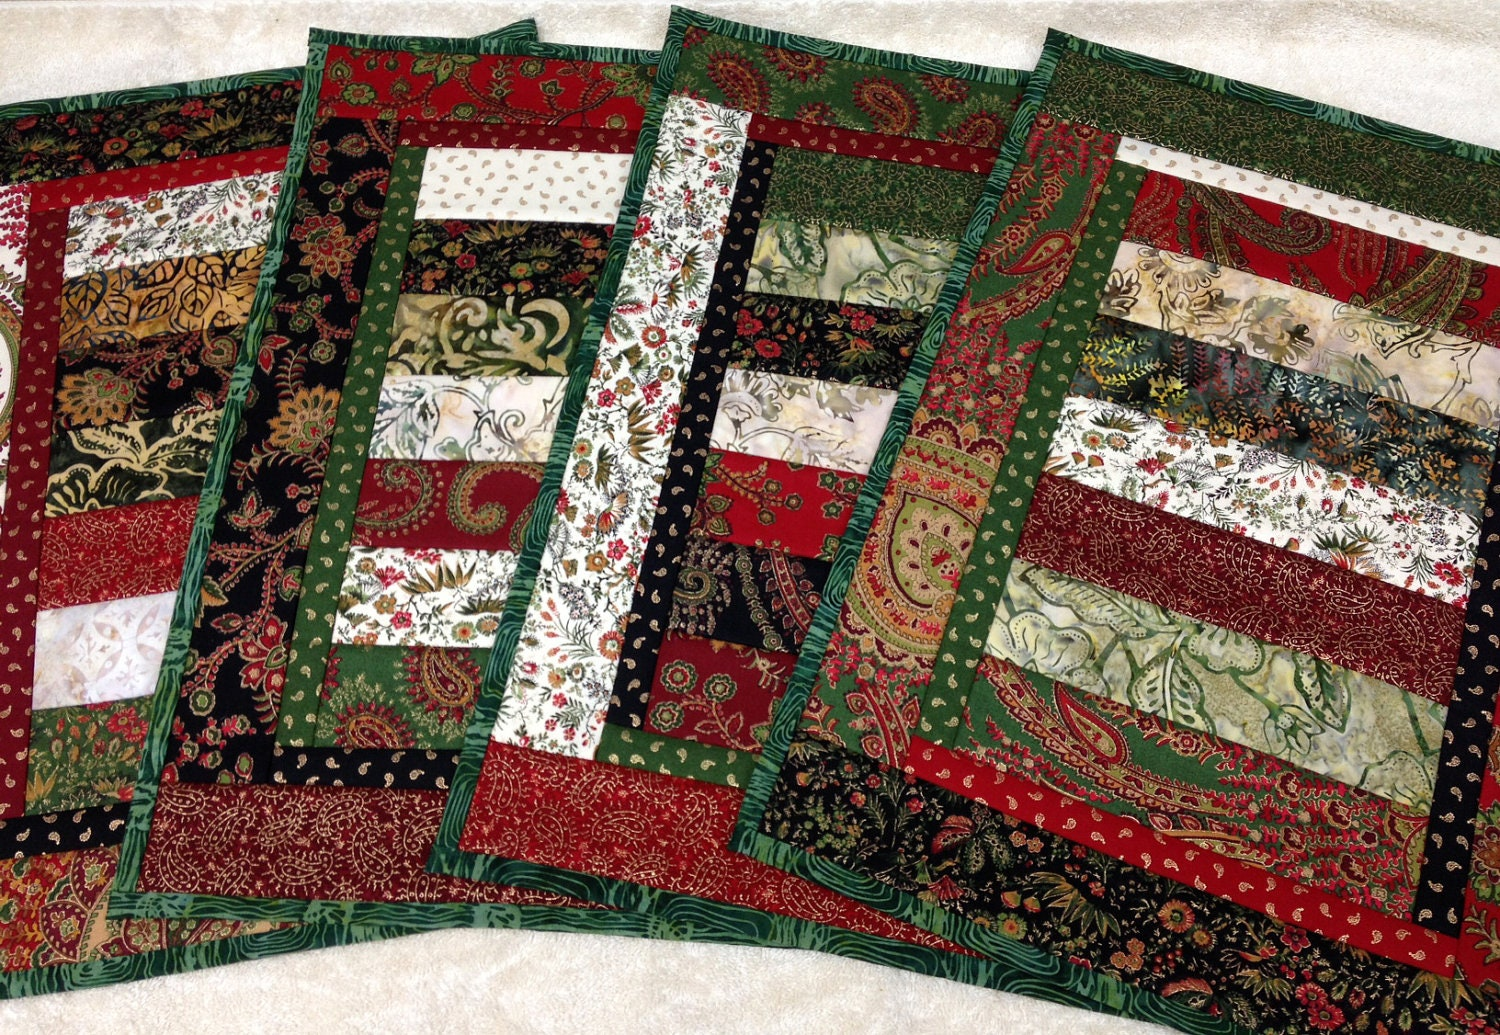 Stunning Quilted Christmas Placemats Set of 4